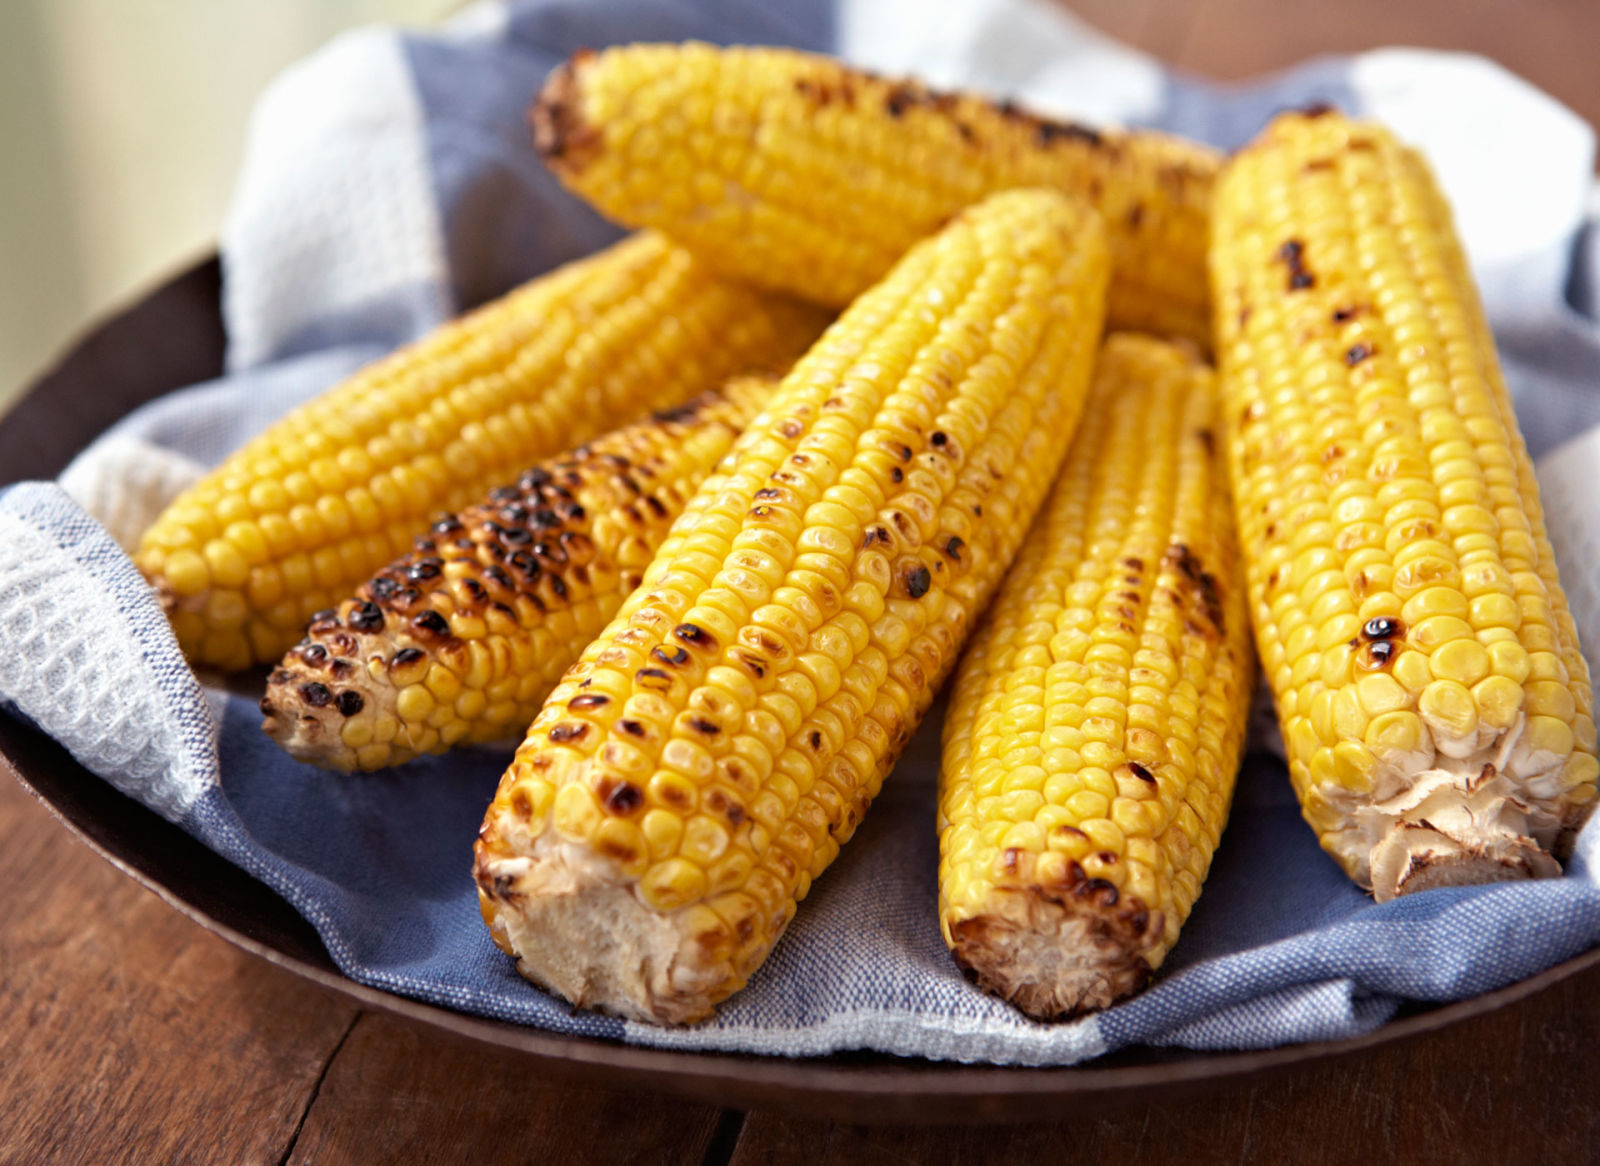 15 Easy Grilled Corn RecipesRecipes for Grilled Corn